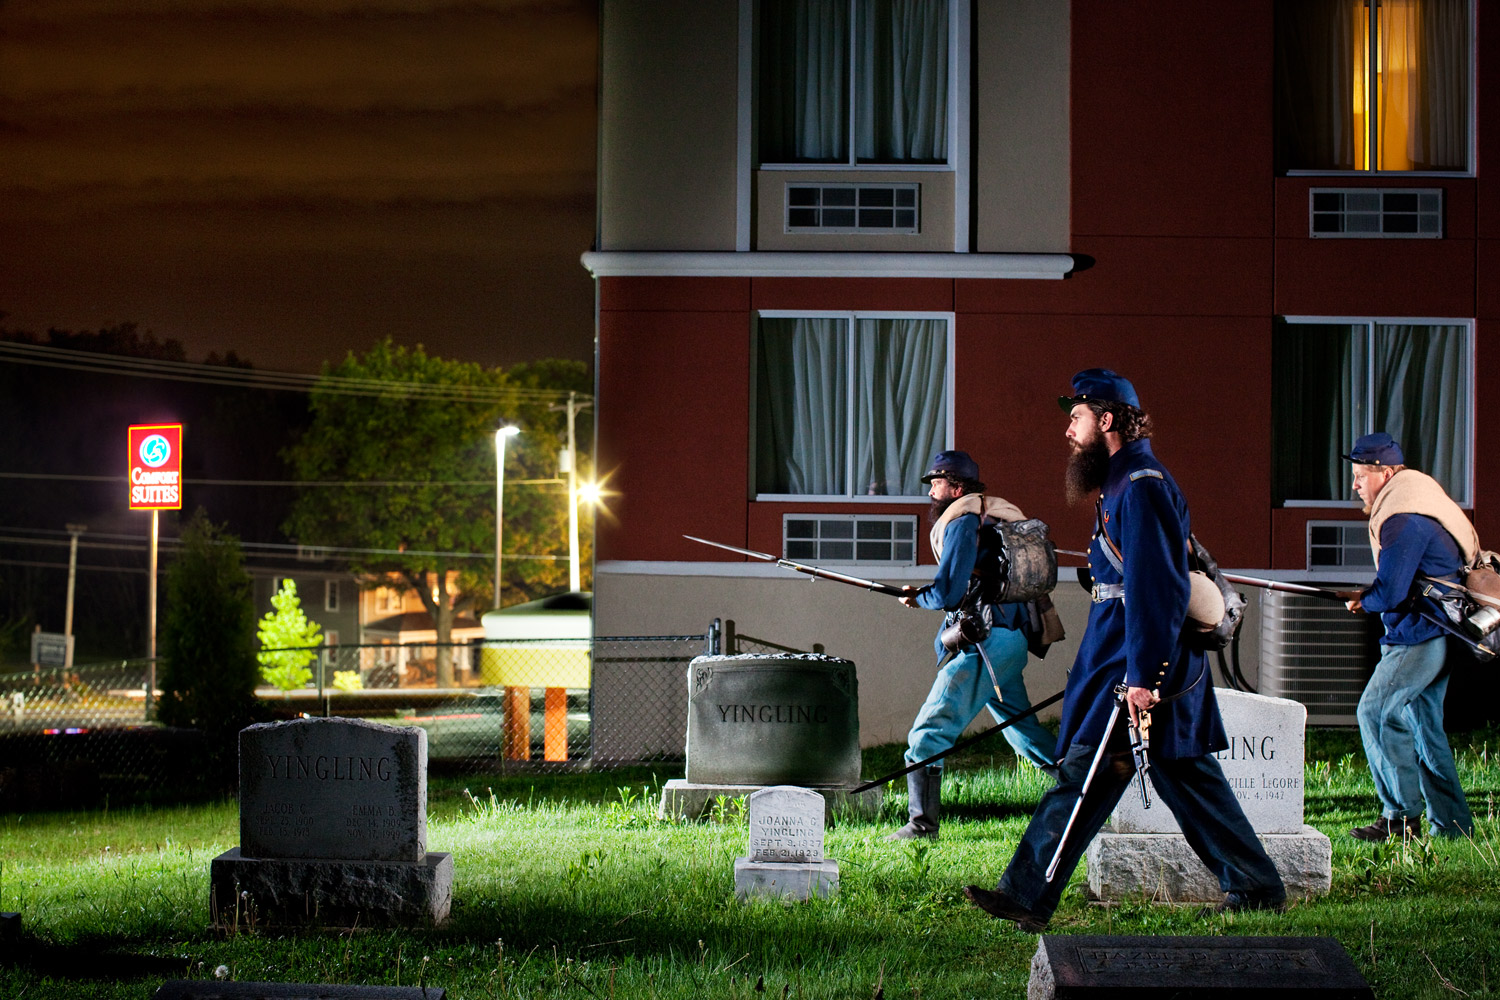 Gettysburg, Pa.                               Robert Lee Hodge, Jerry Hornbaker and Tim Cole advance through the Gettysburg Cemetery. The Comfort Suites was recently built on the battlefield just a few feet from the graves.